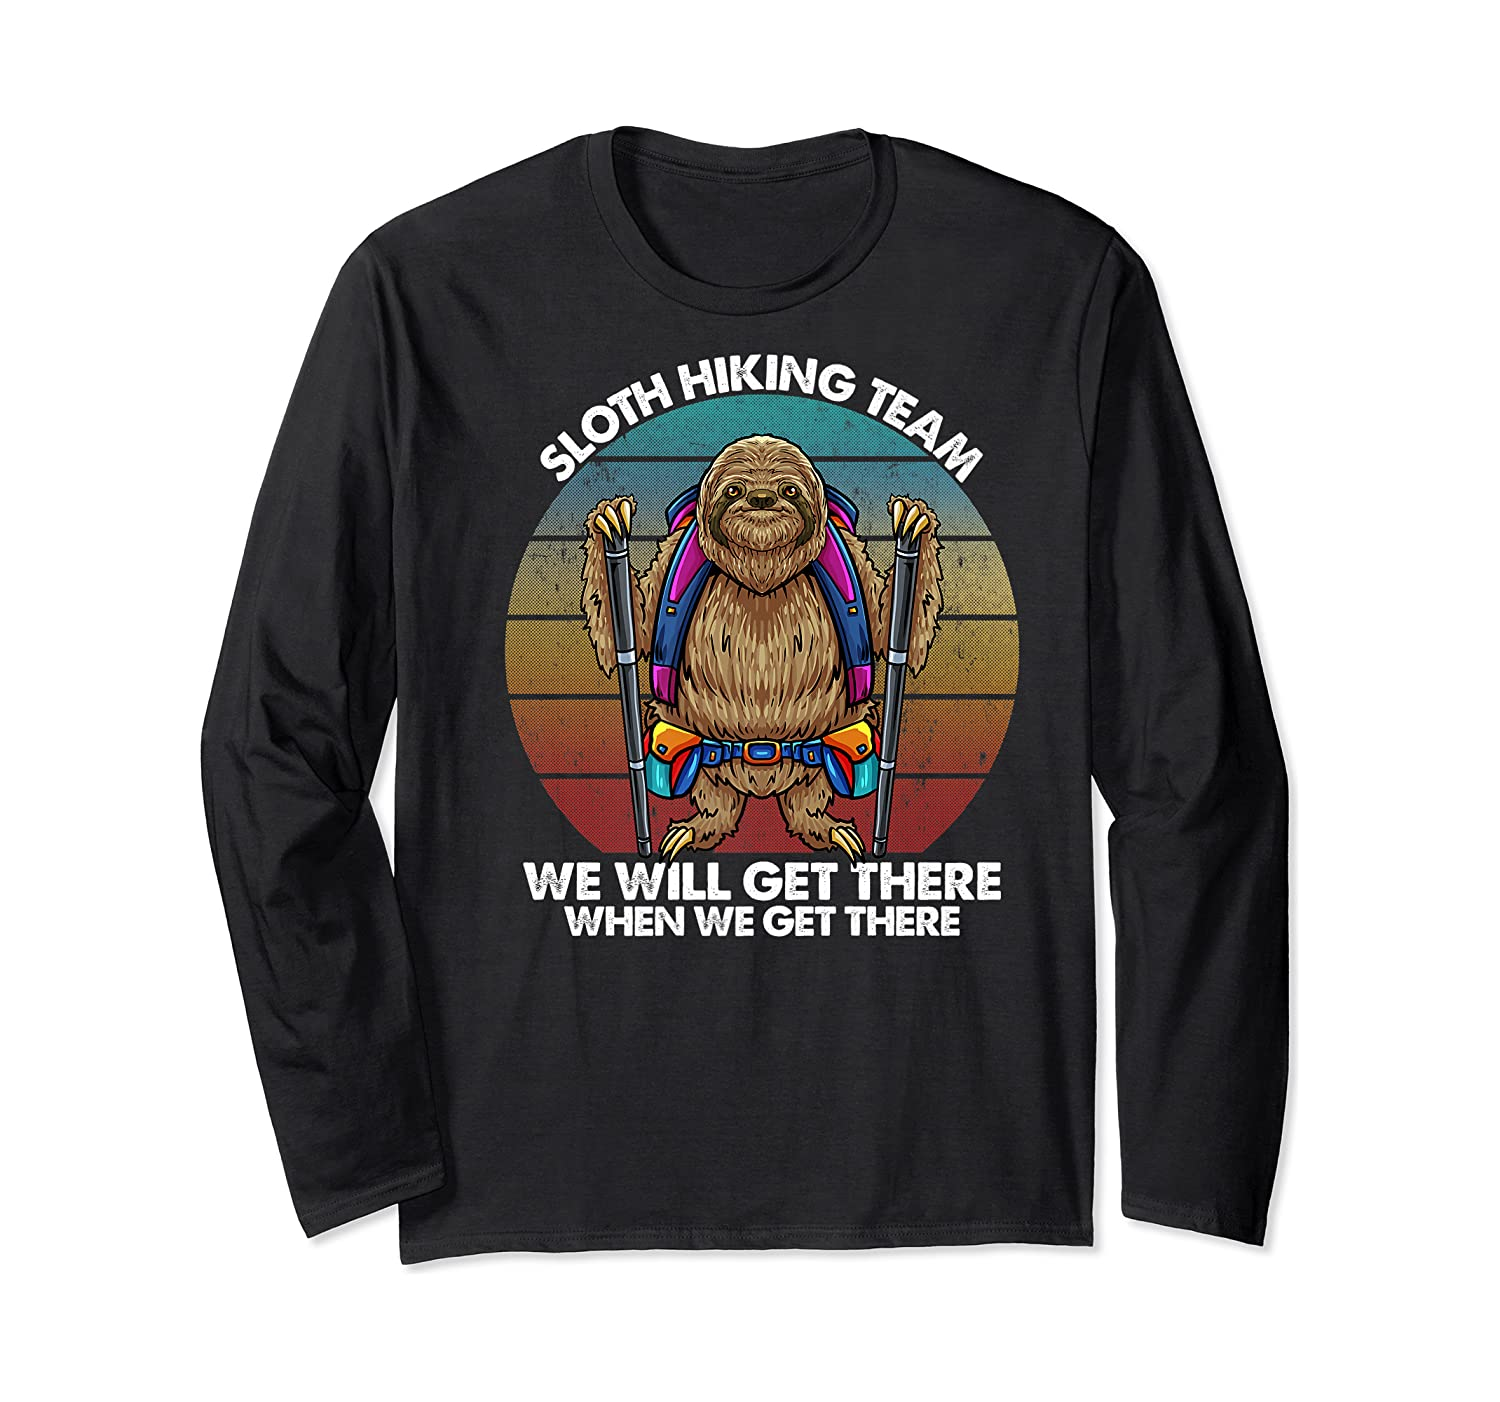 Sloth Hiking Team We Will Get There Retro Vintage Shirts Long Sleeve T-shirt